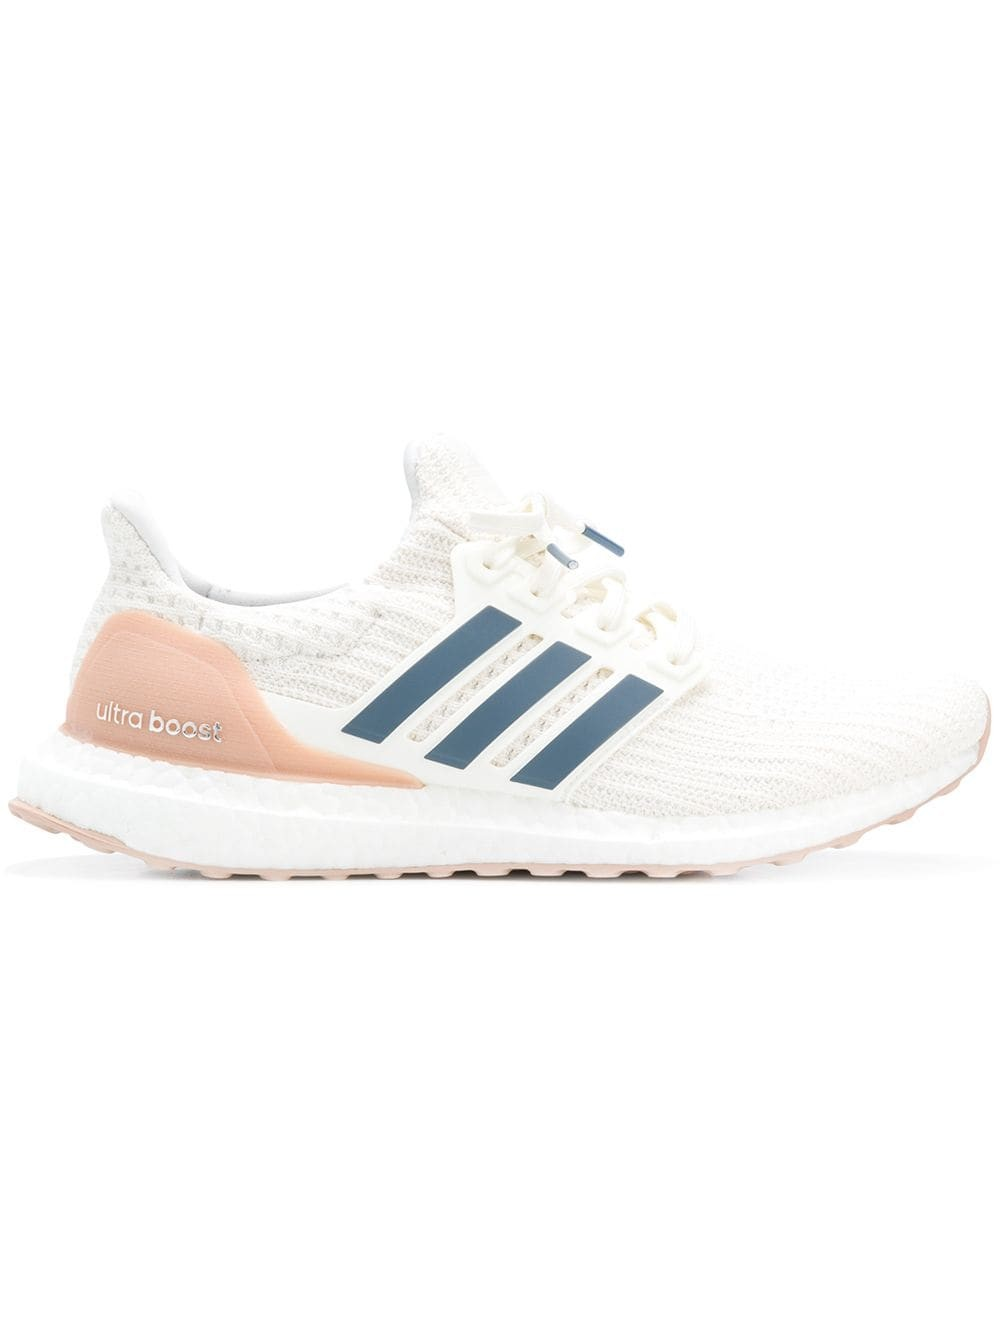 didas Ultra Boost 4.0 Show Your Stripes Blanche Bleu CM8114